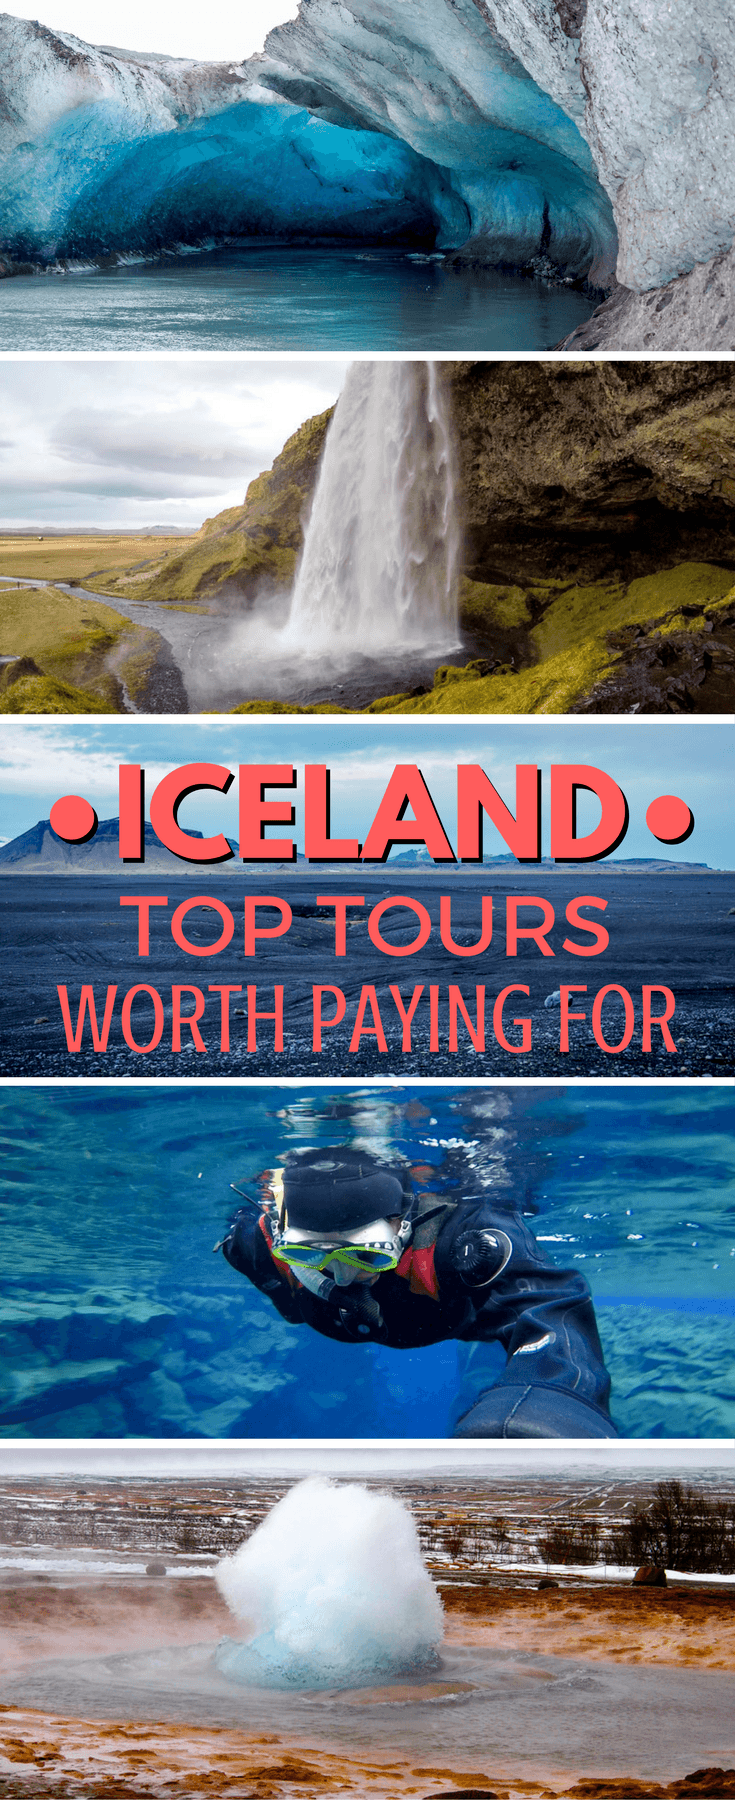 Best Iceland Tours Worth Paying For | #Iceland